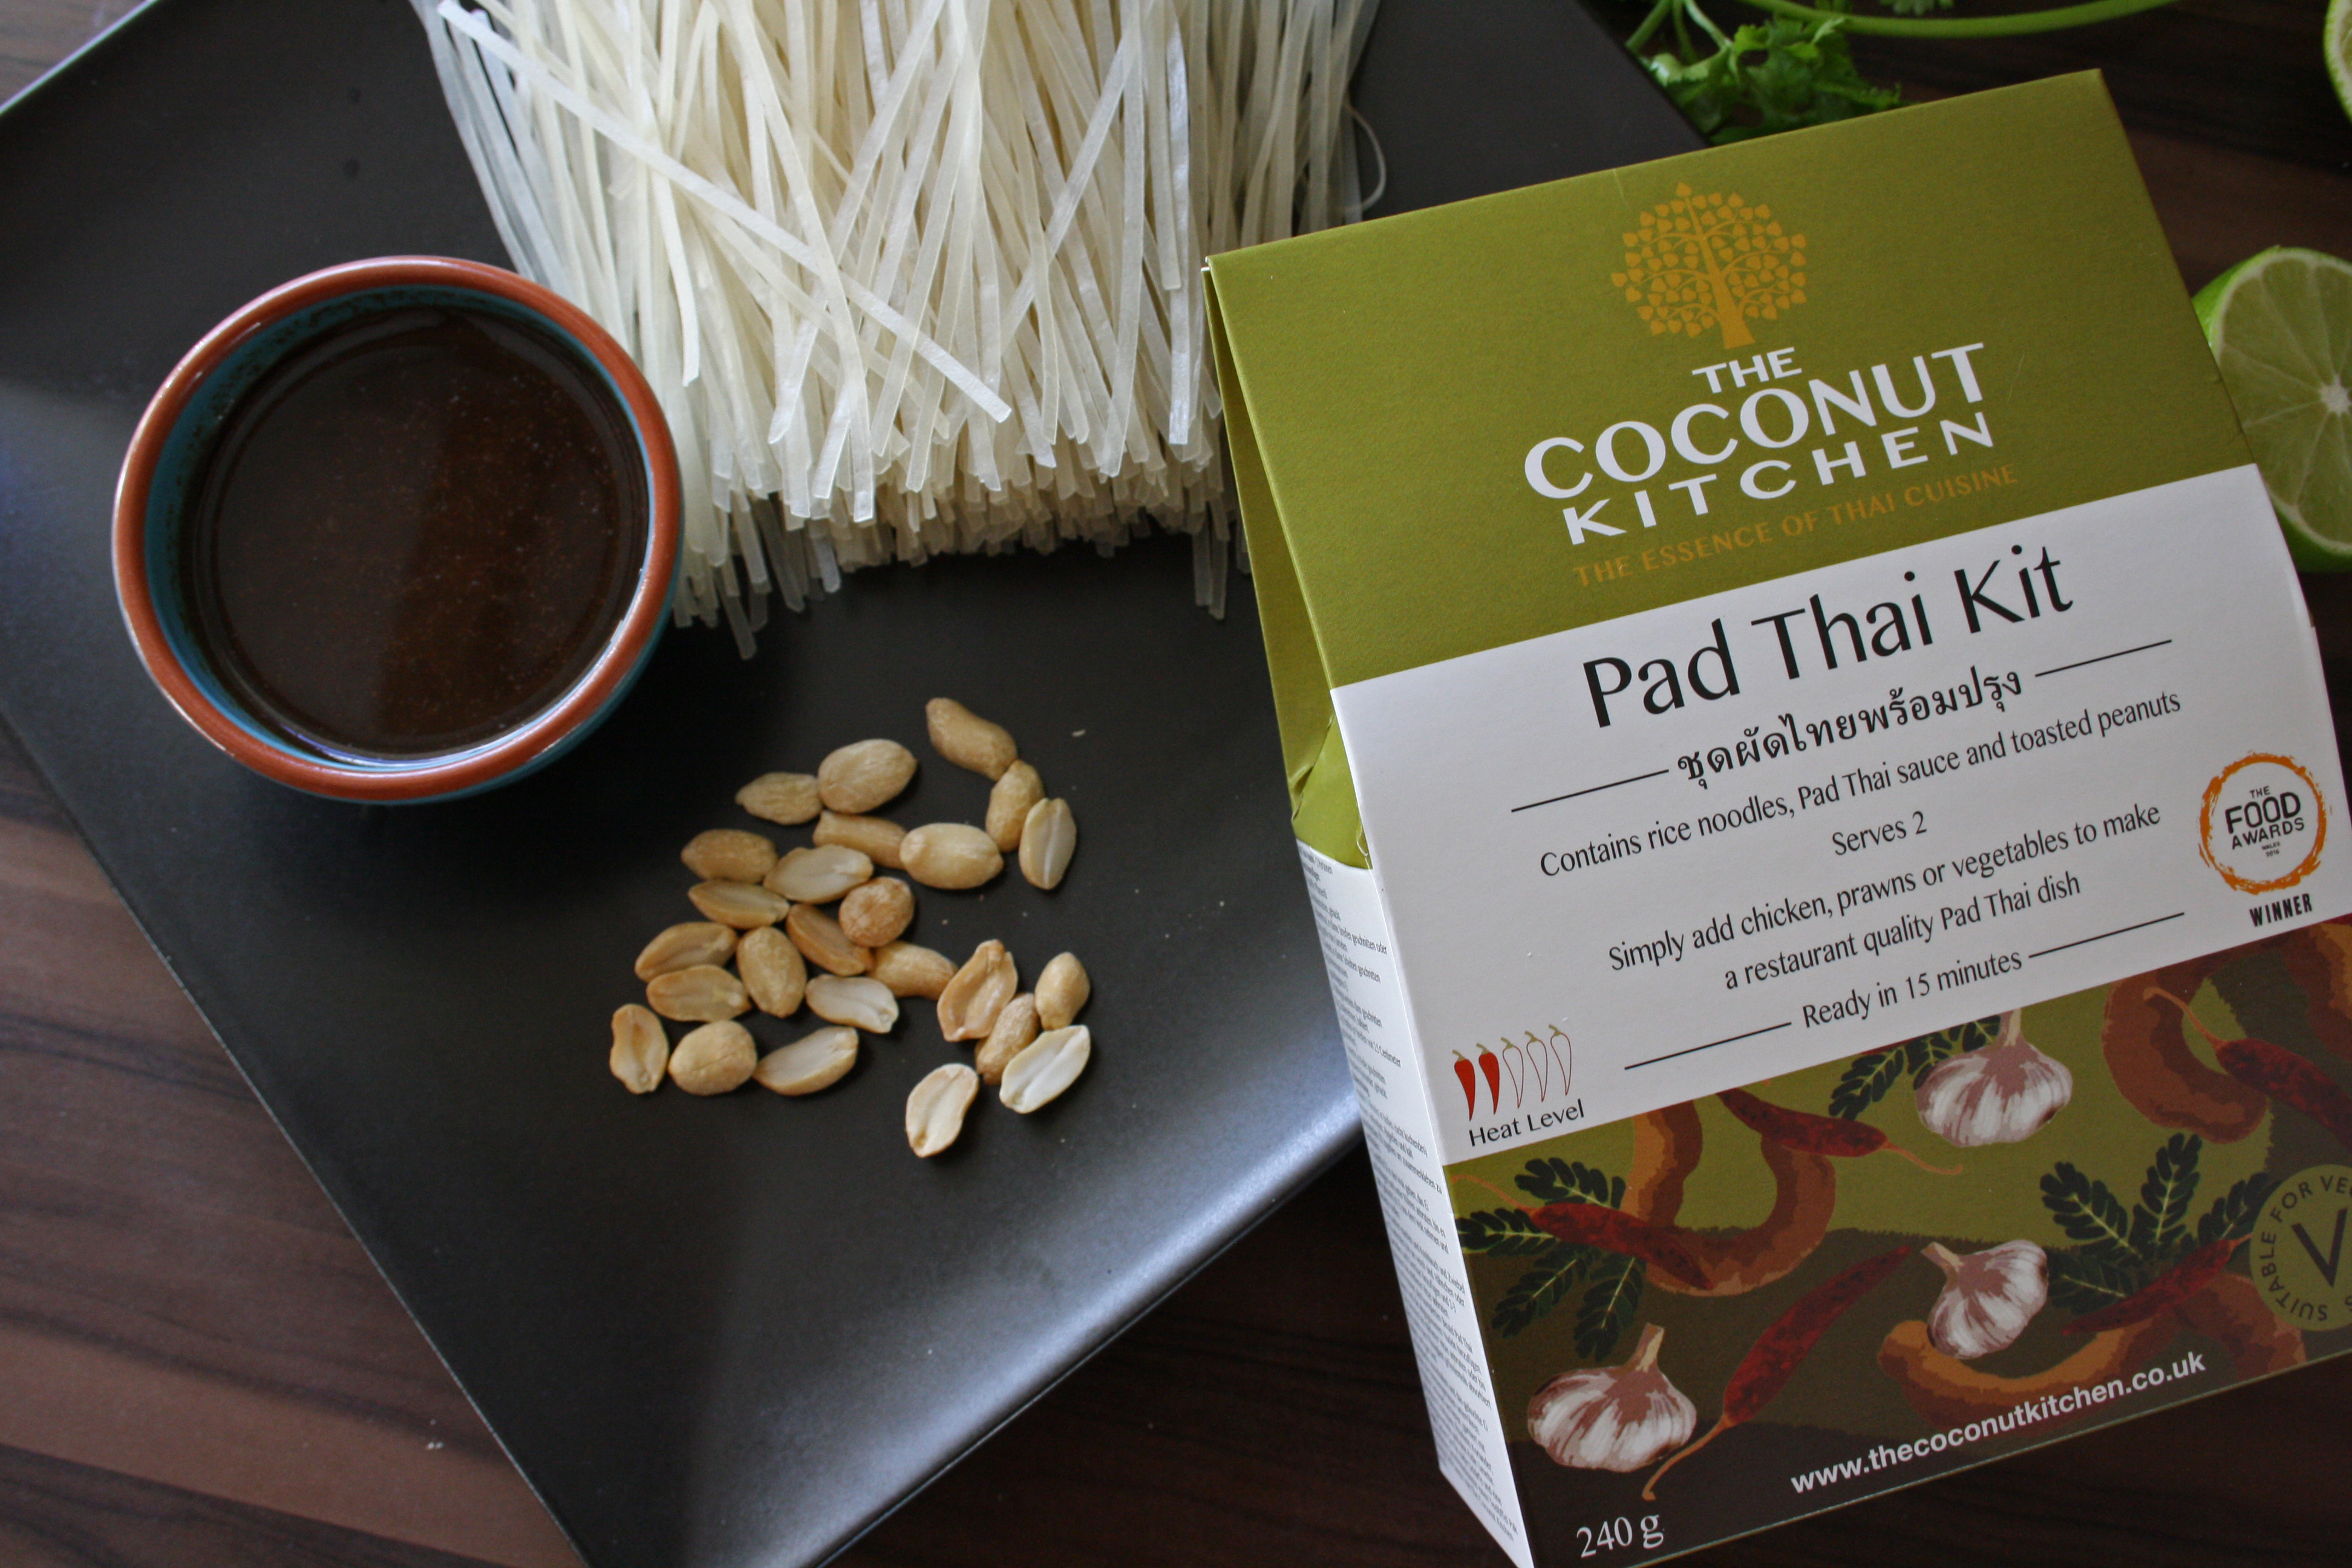 Pad Thai Meal Kit The Coconut Kitchen